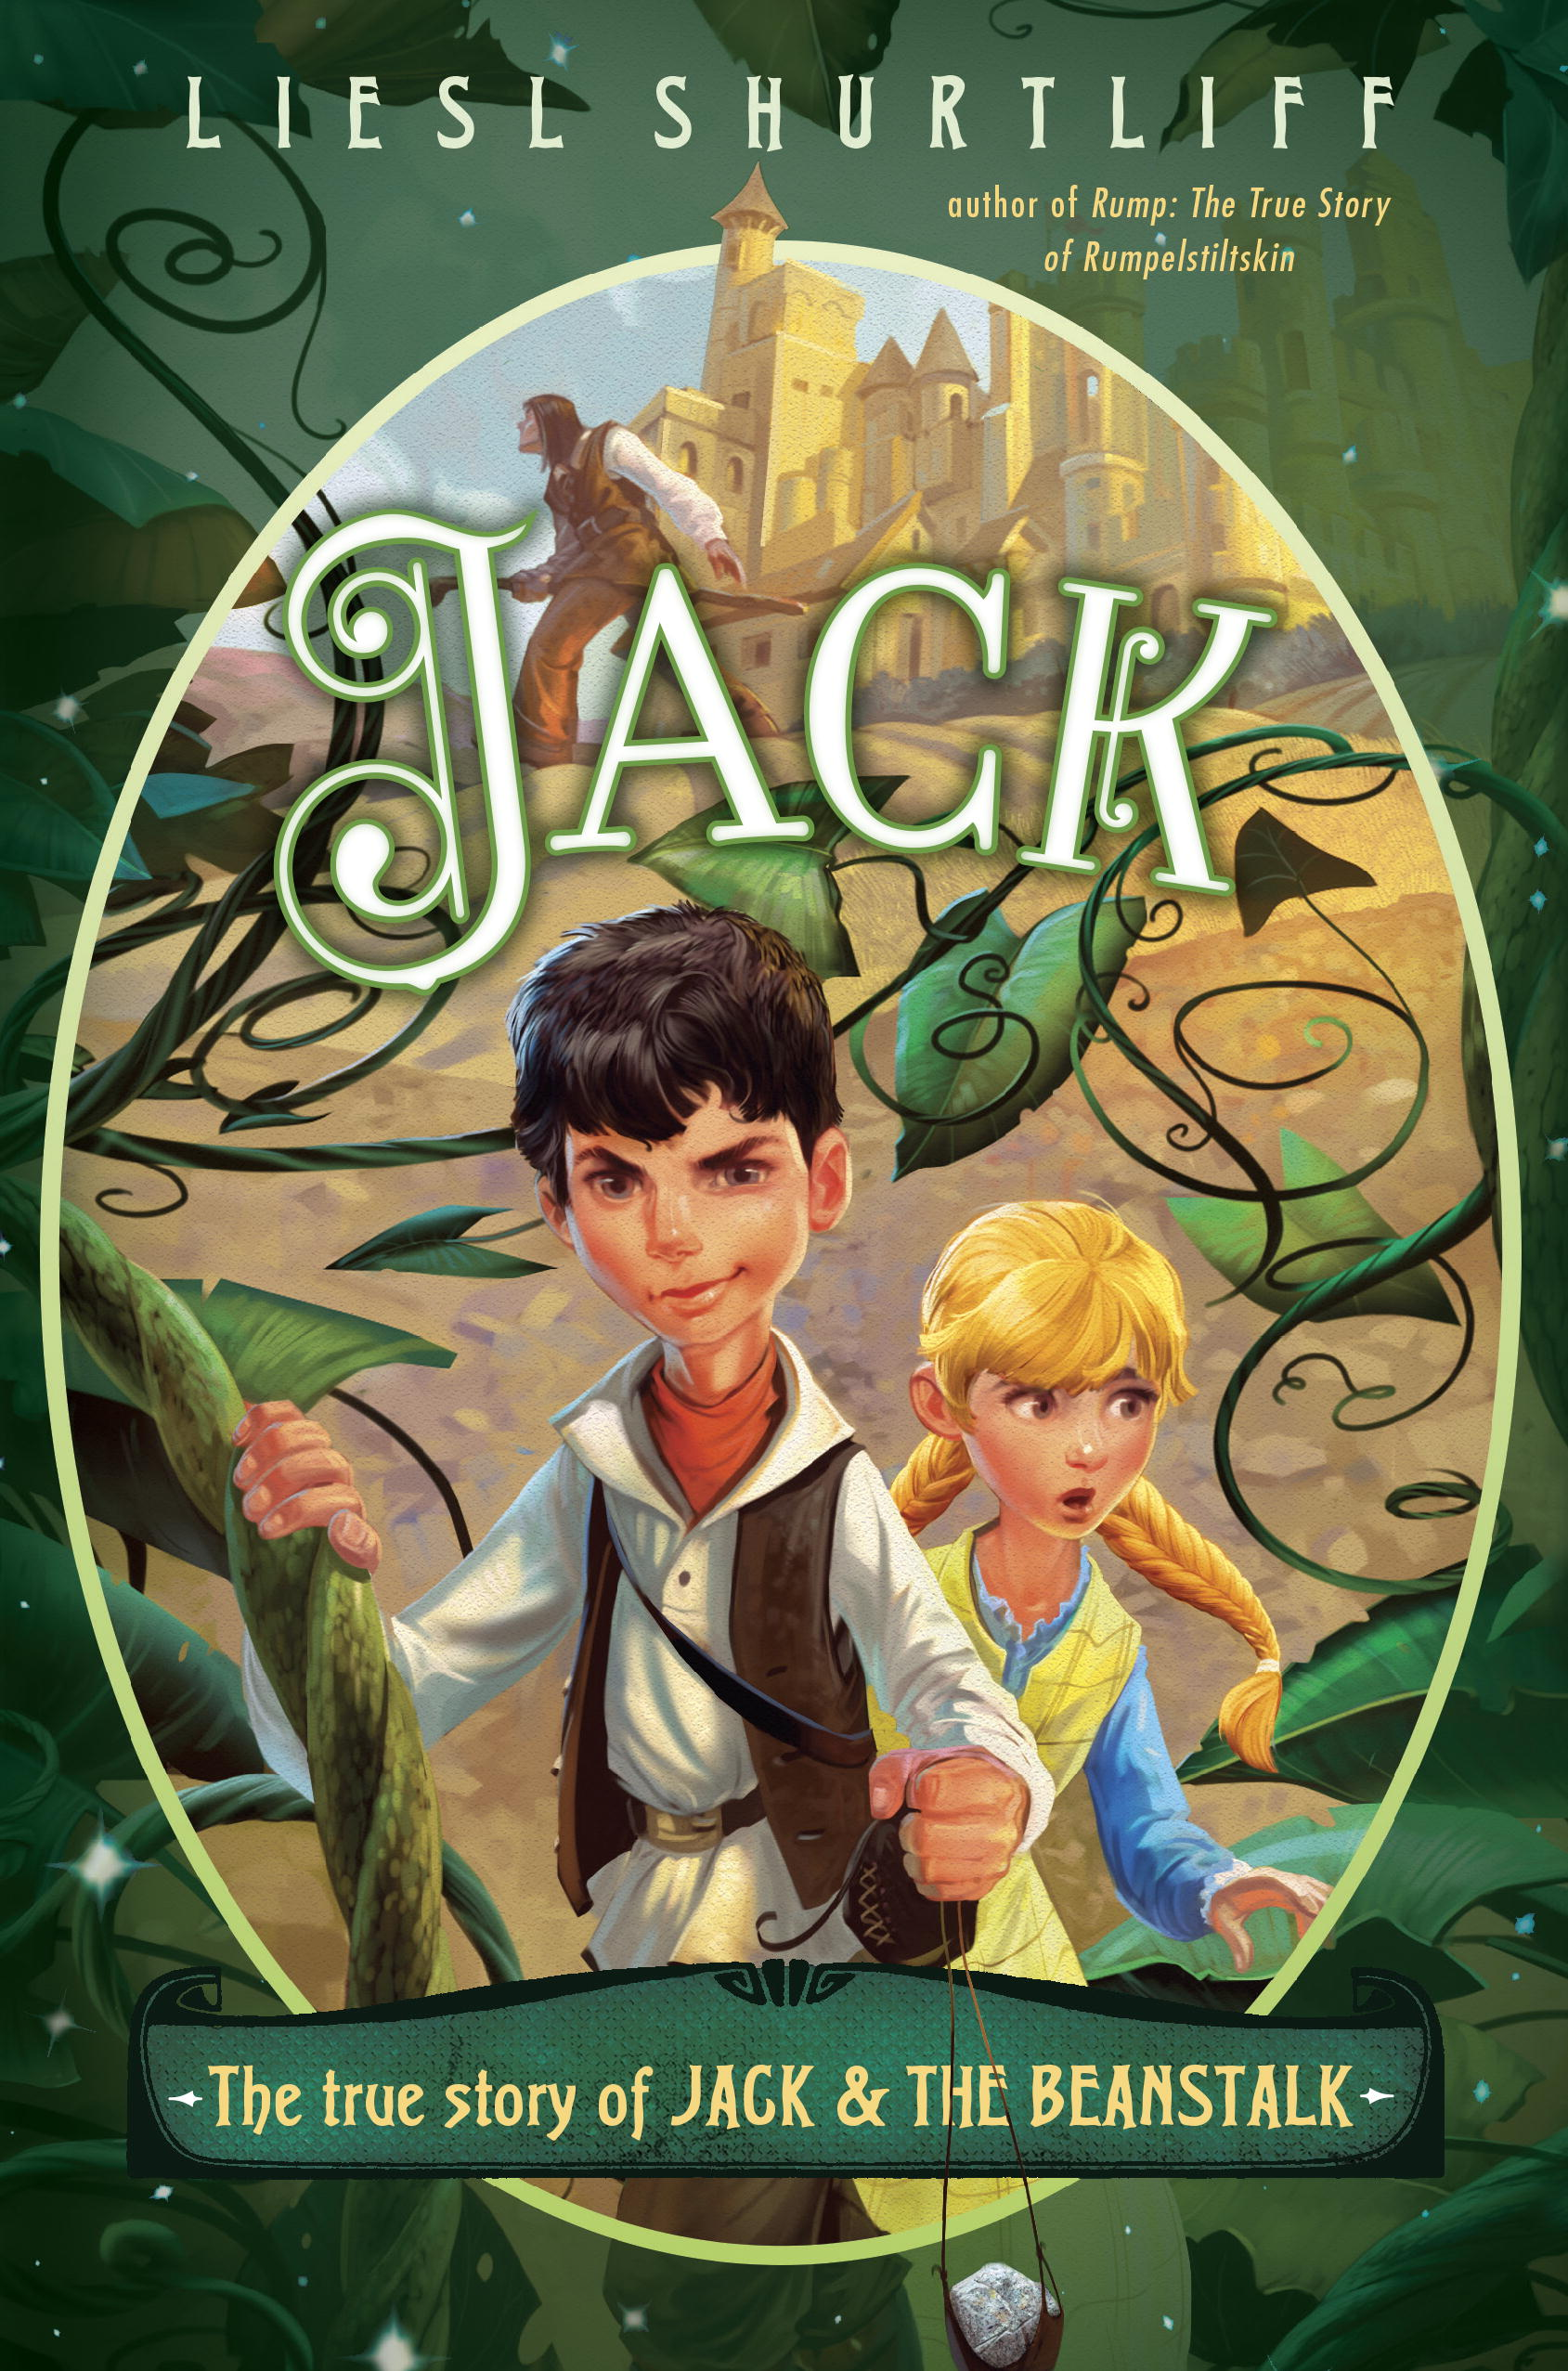 Jack The True Story Of Jack And The Beanstalk By Liesl